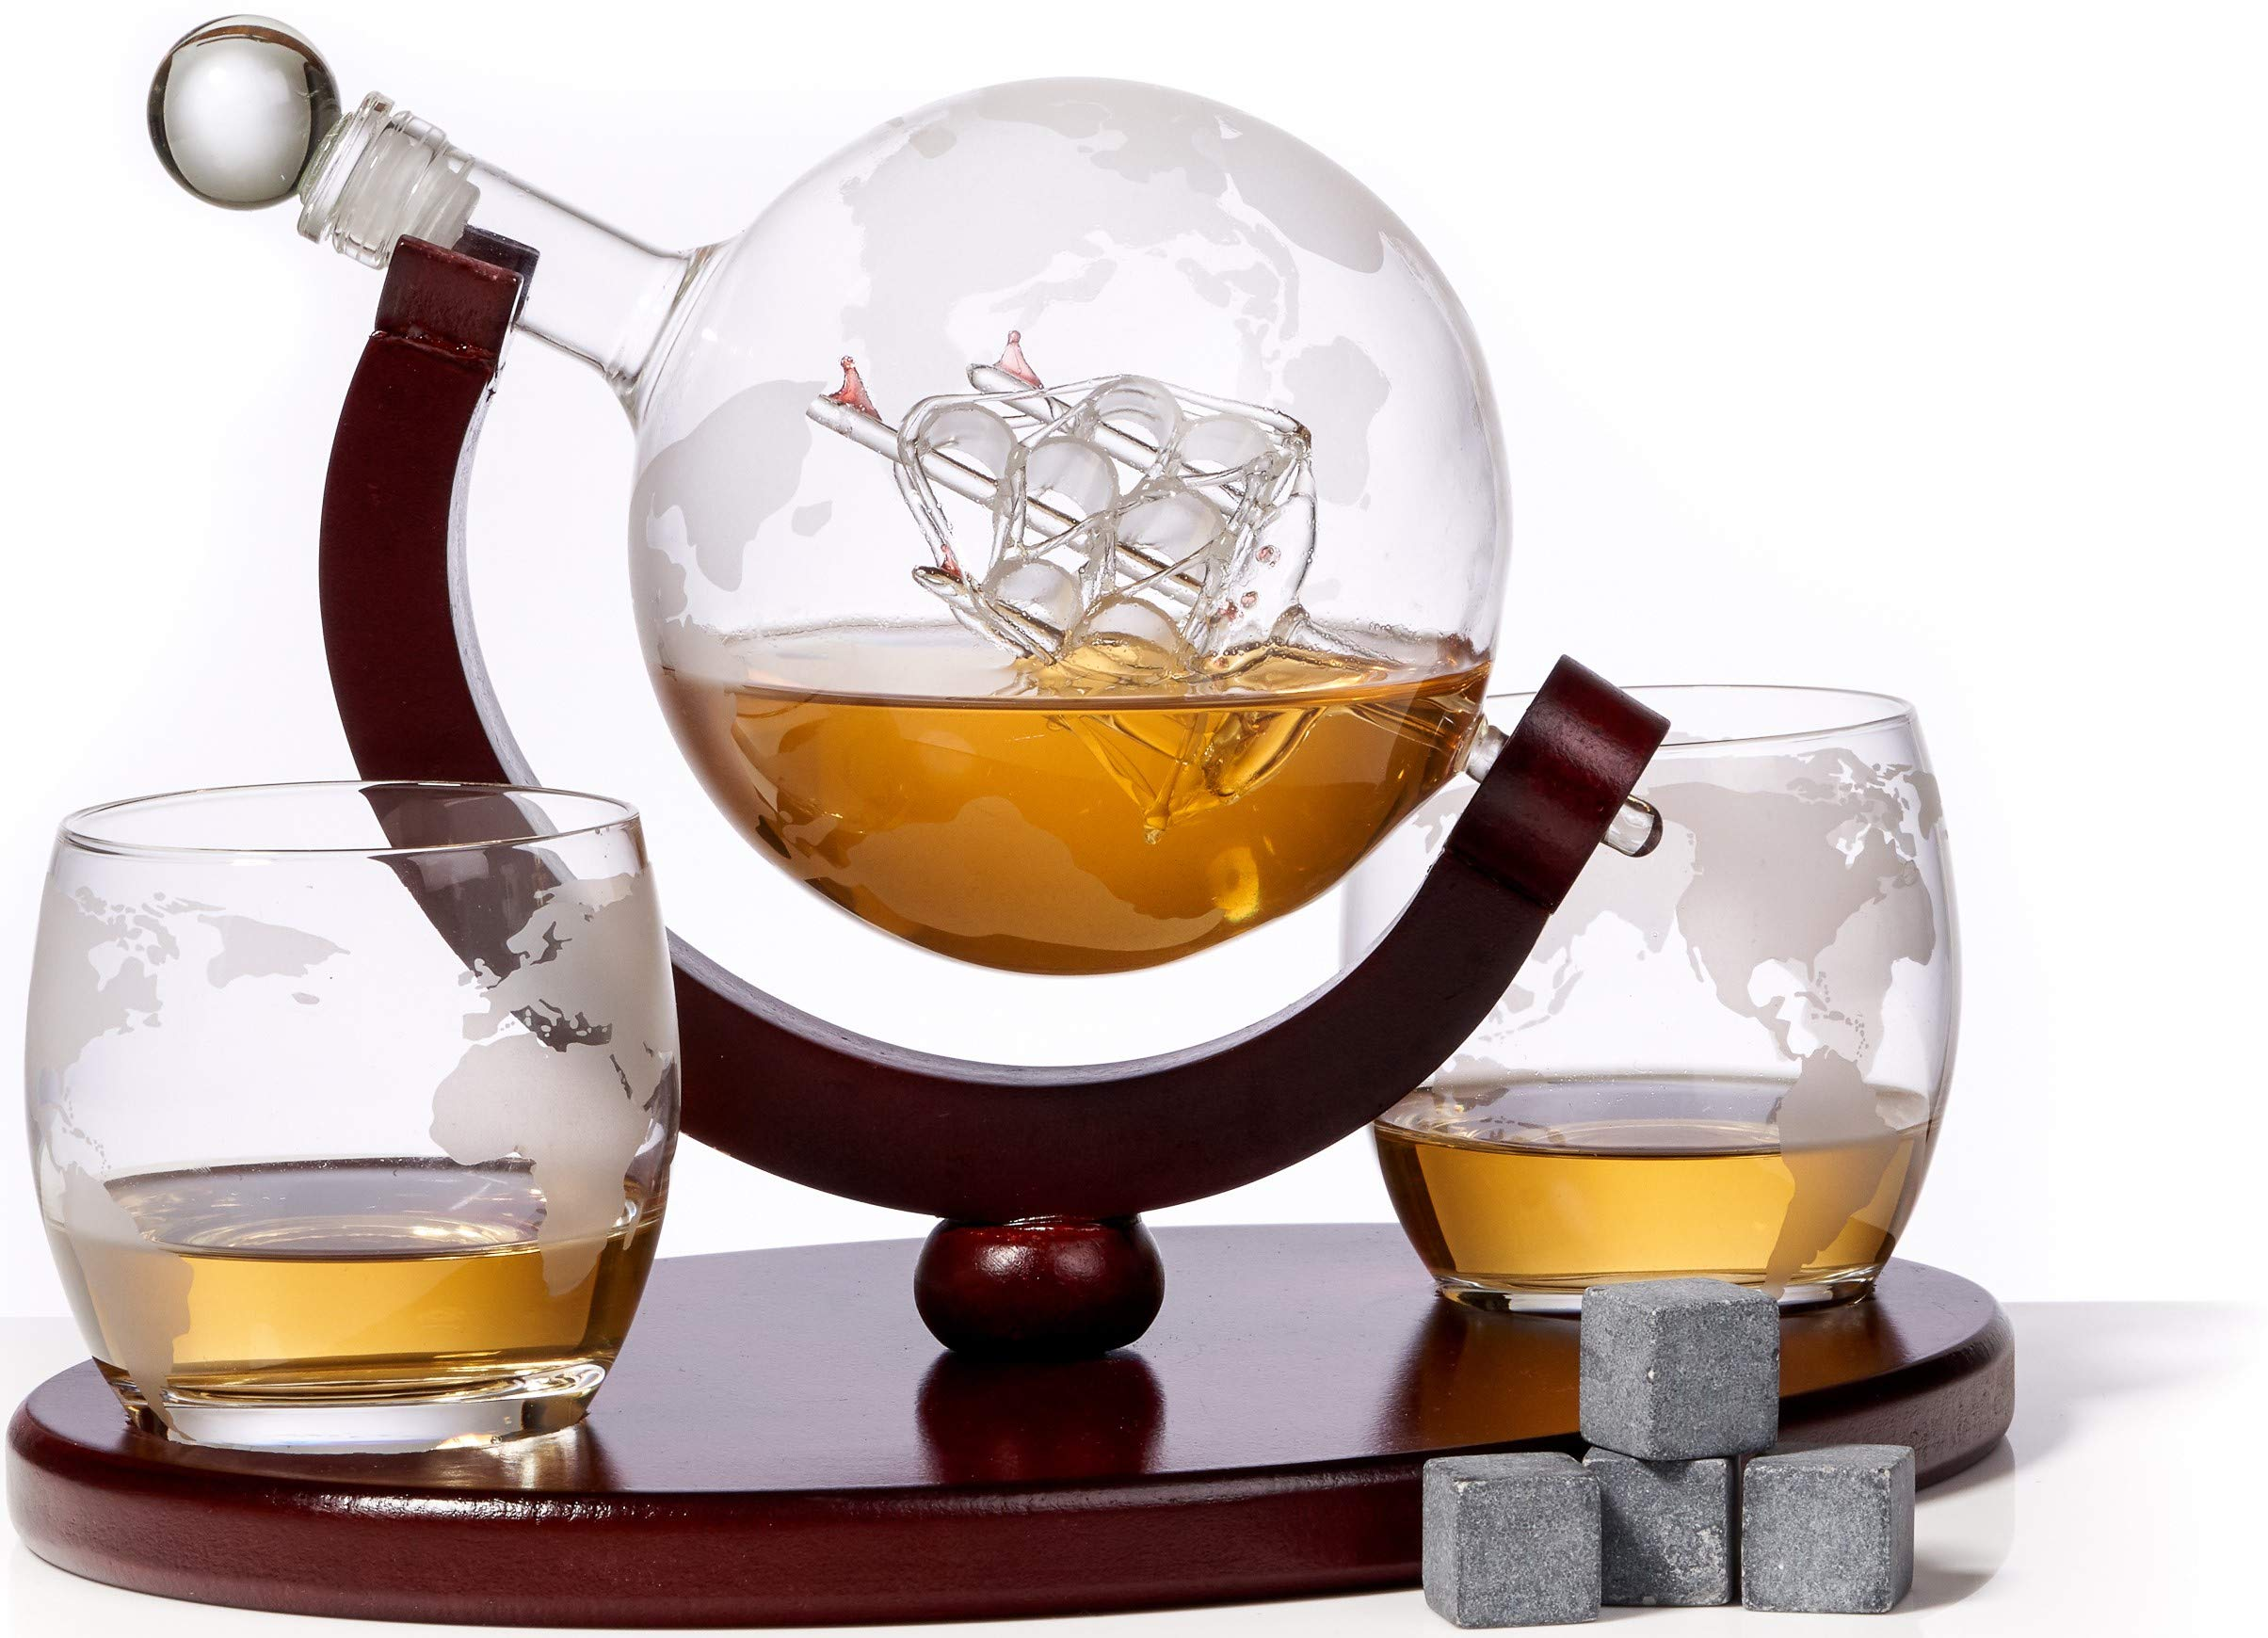 Whiskey Decanter and Glass Set - Includes Whisky Decanter Globe with 2 Whiskey Glasses + 4 Whiskey Stones - Etched Globe Liquor Decanter Set with Tray - for all Beverage Serveware